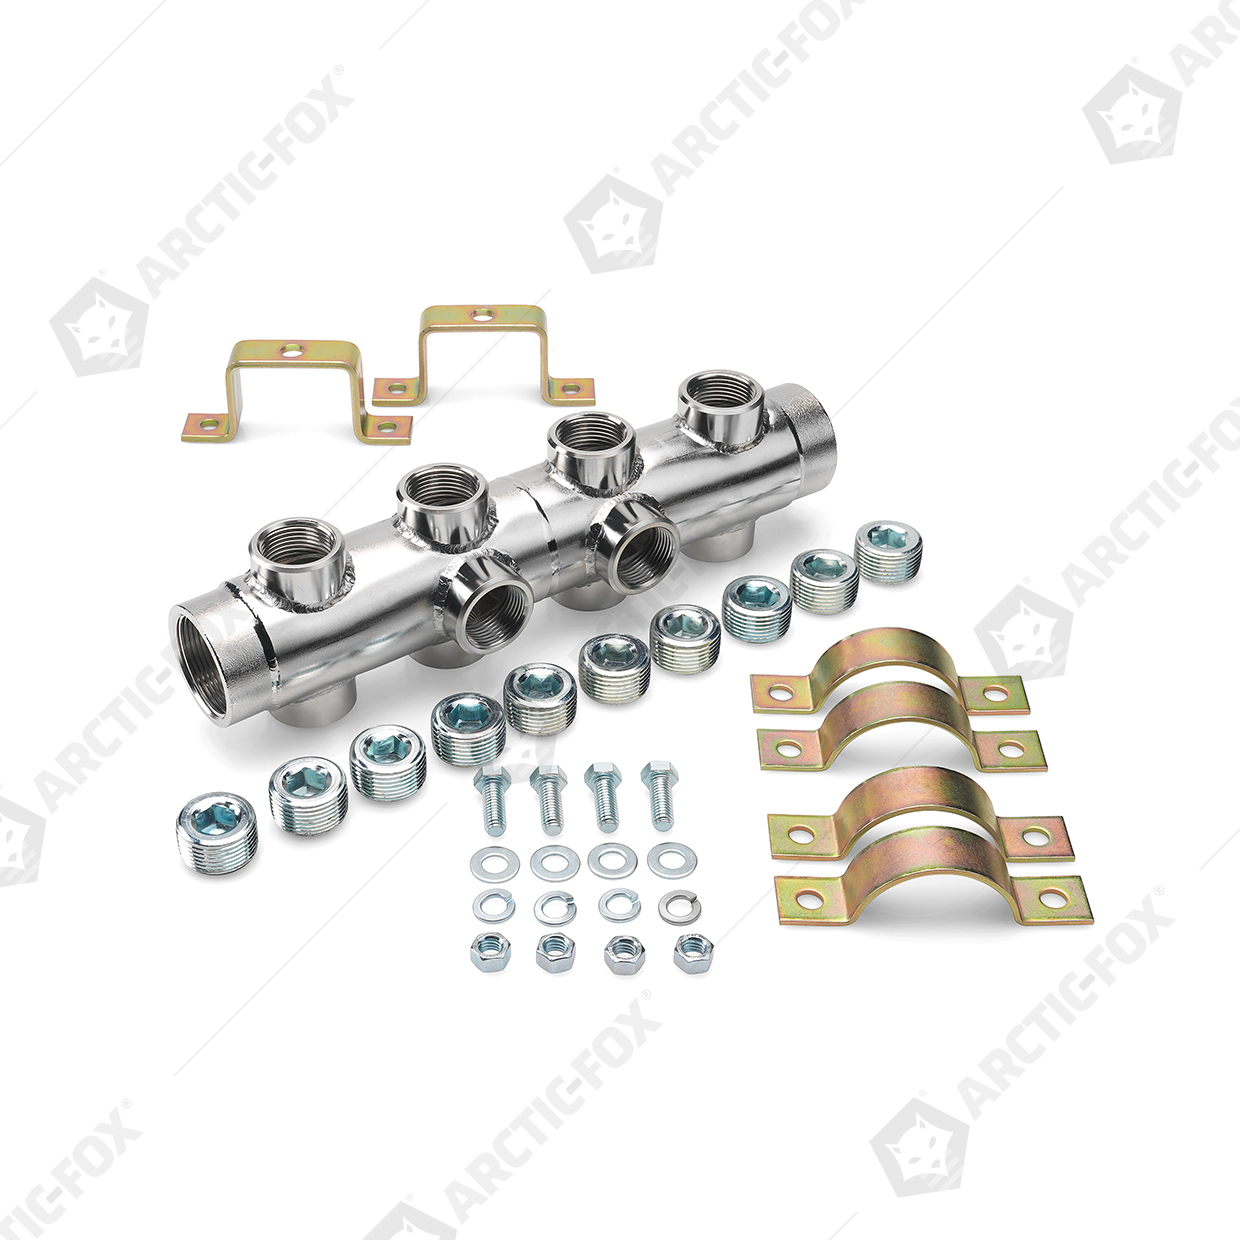 Coolant Distribution Manifolds